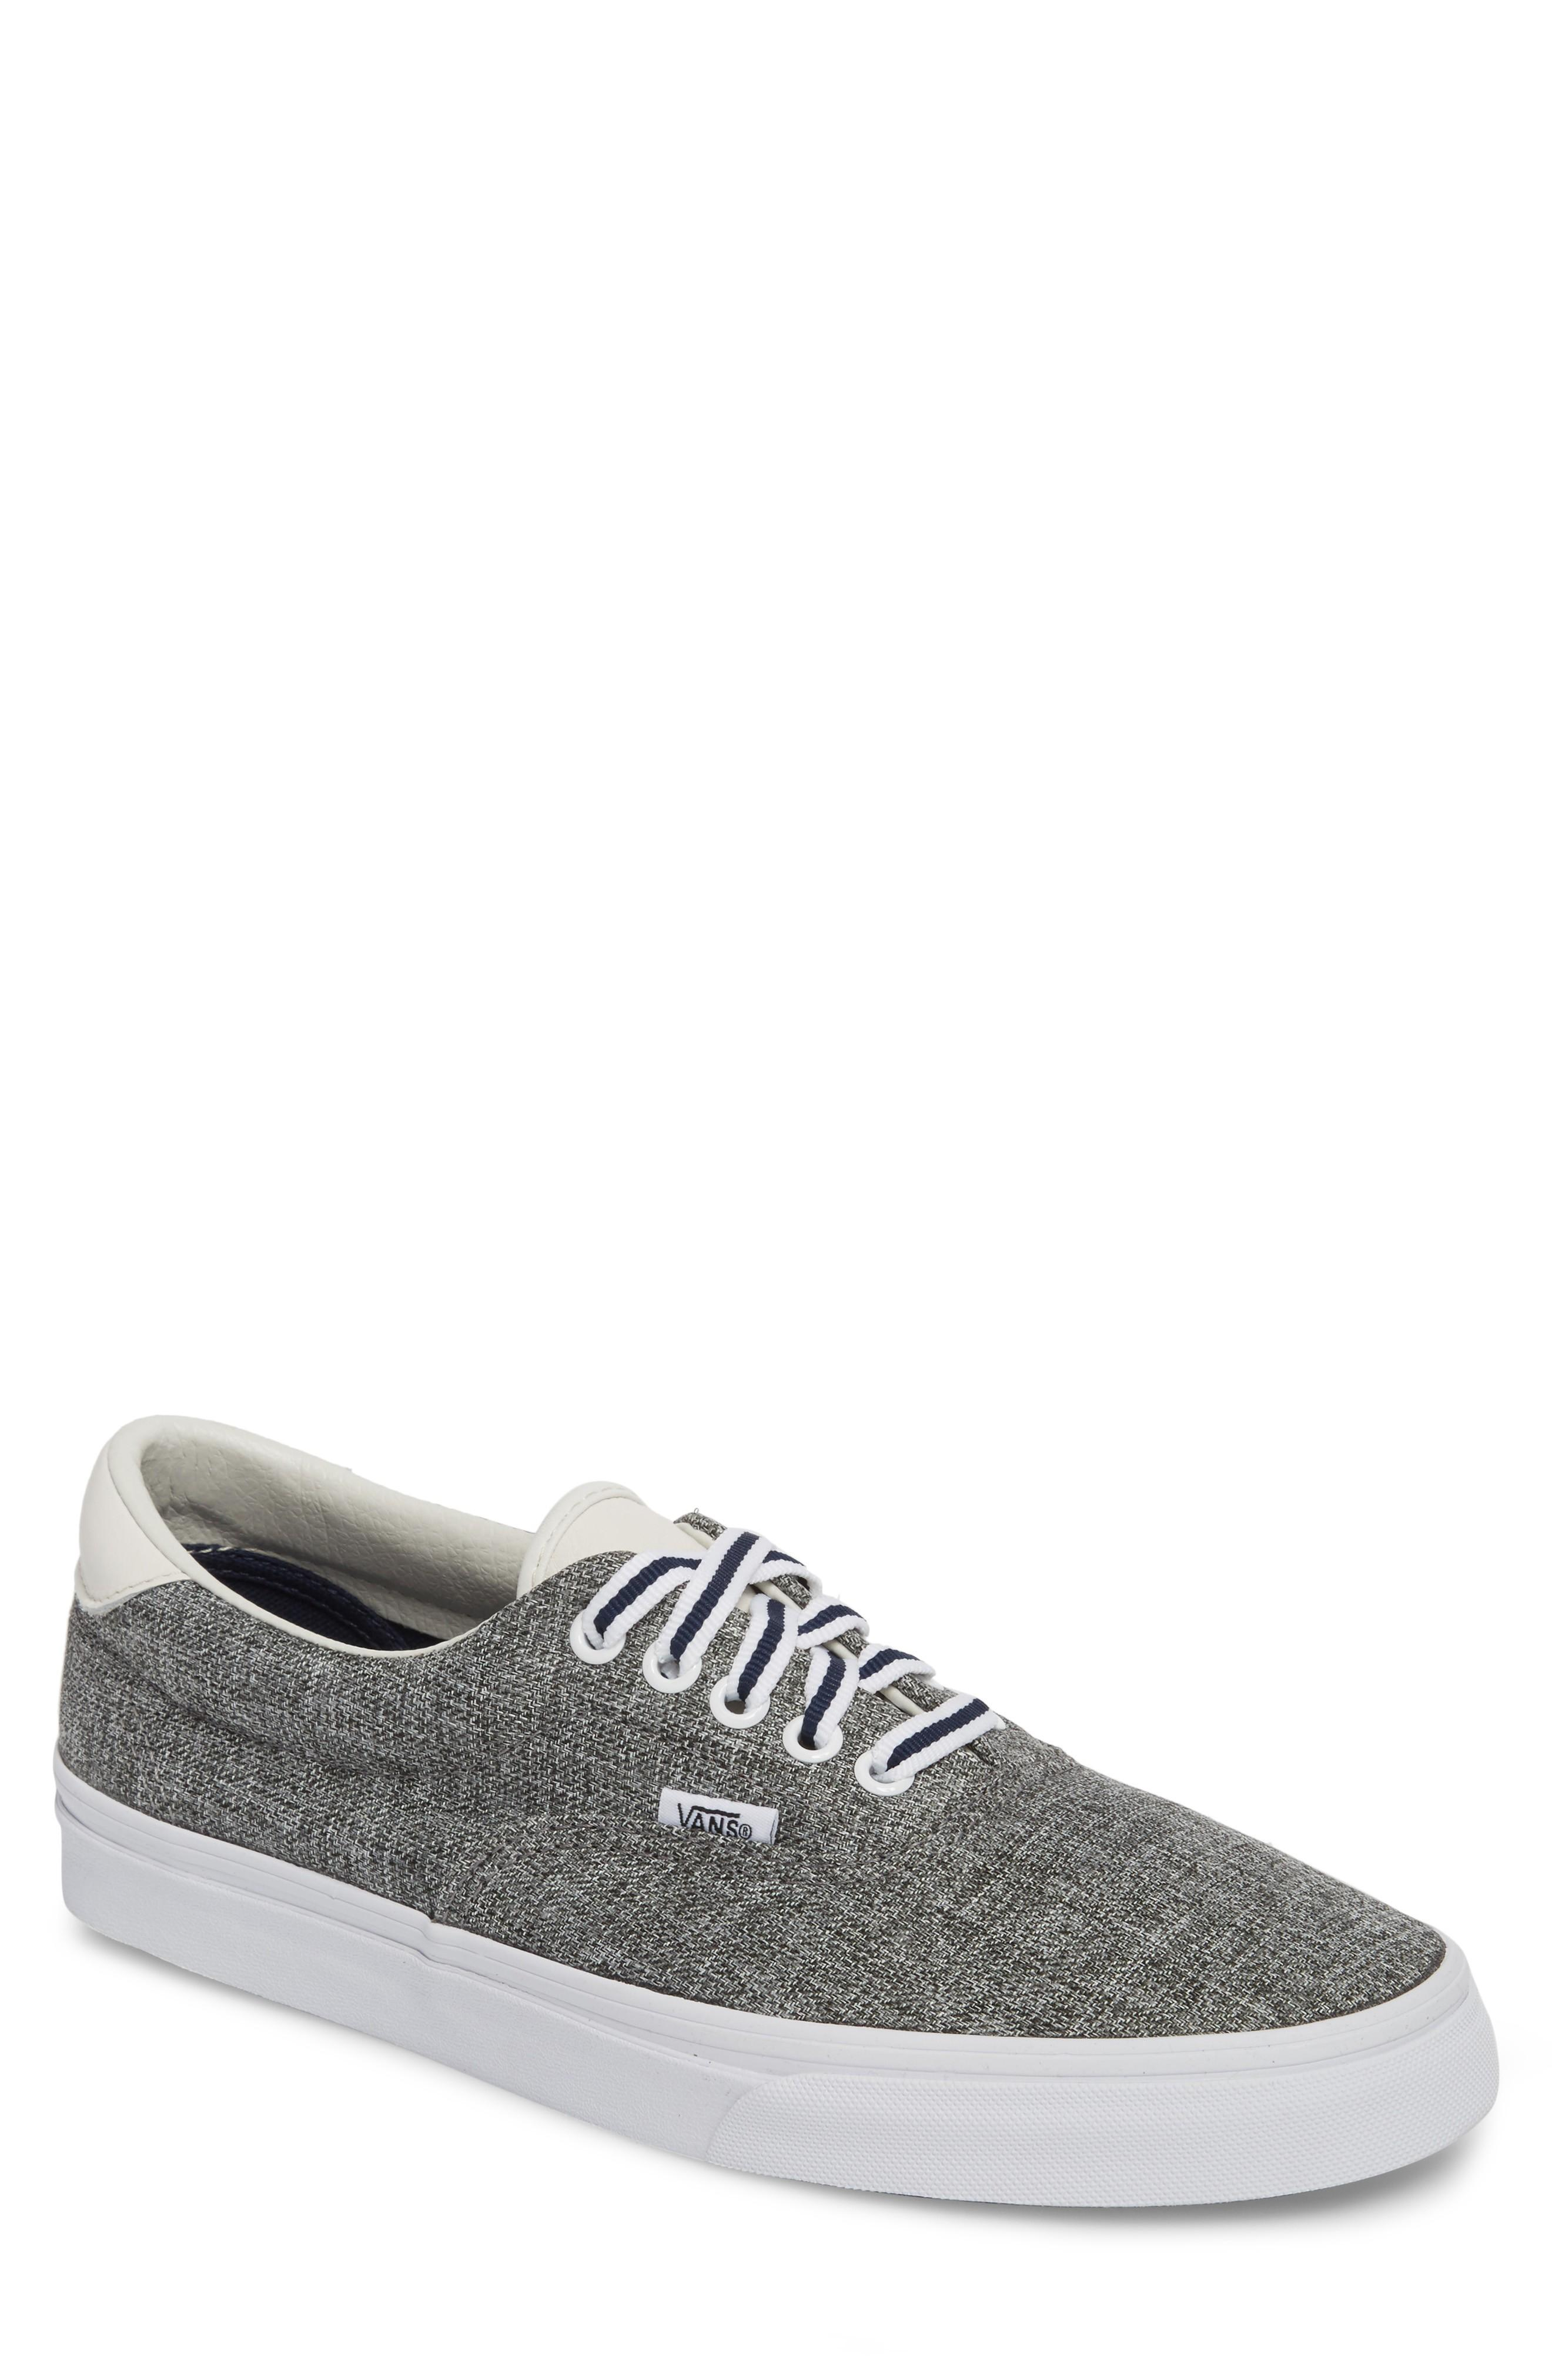 22e3a960ae5cd9 Clean vintage appeal stamps a versatile sneaker shaped from classic  chambray for cool texture. Style Name  Vans  Era 59  Sneaker (Men).